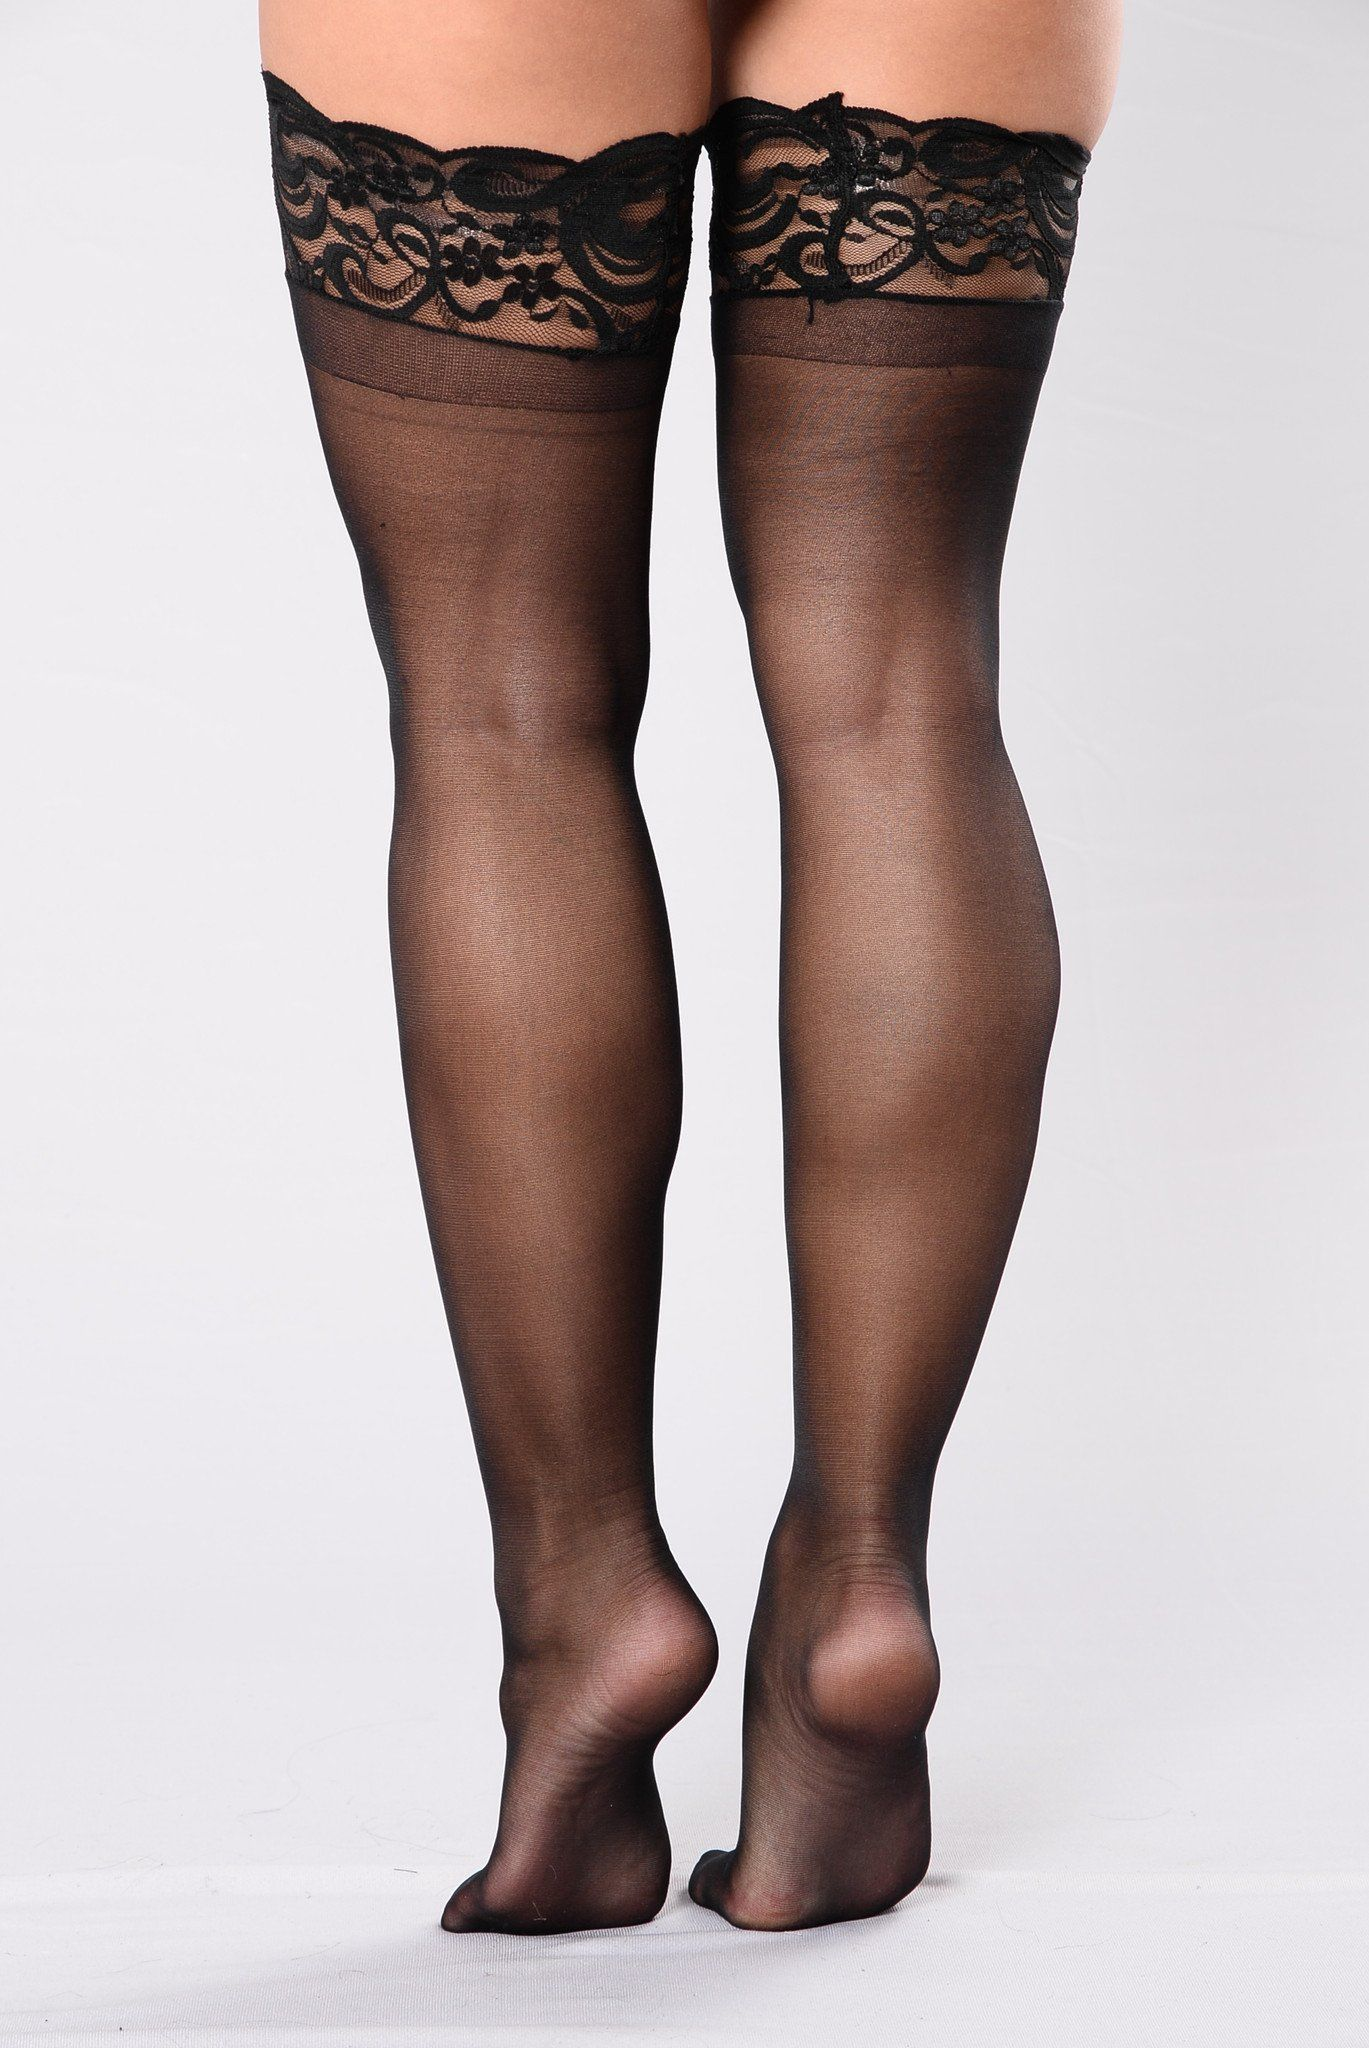 d7626b6be0e Sheer Thigh High Lace Top Stocking - Black | Clothes | Thigh highs ...